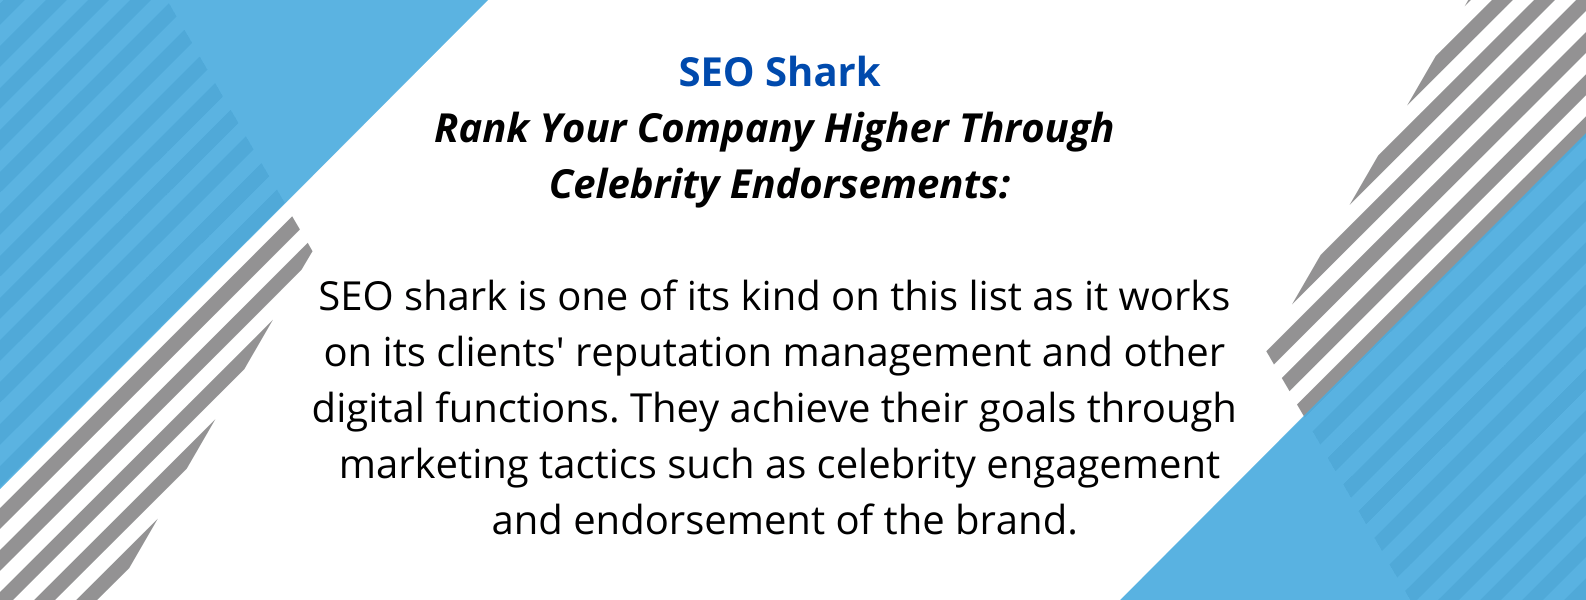 Unique Selling Proposition of SEO Shark - one of the best SEO agencies in Australia